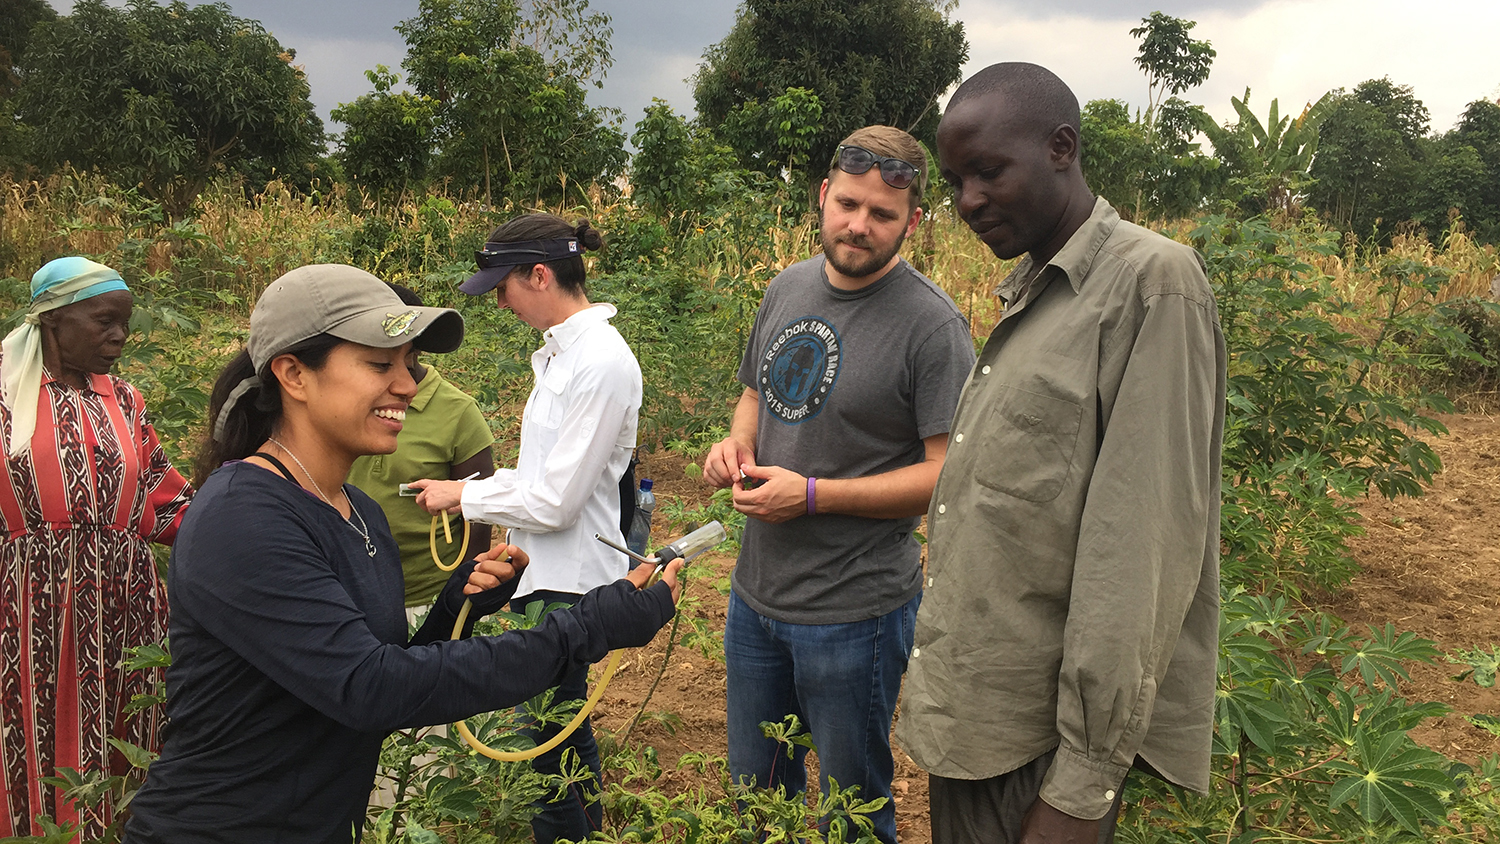 Gabriella Chavez (left) and William Sharpee (middle) talk with local cassava growers about how Cassava Mosaic Disease is transmitted.